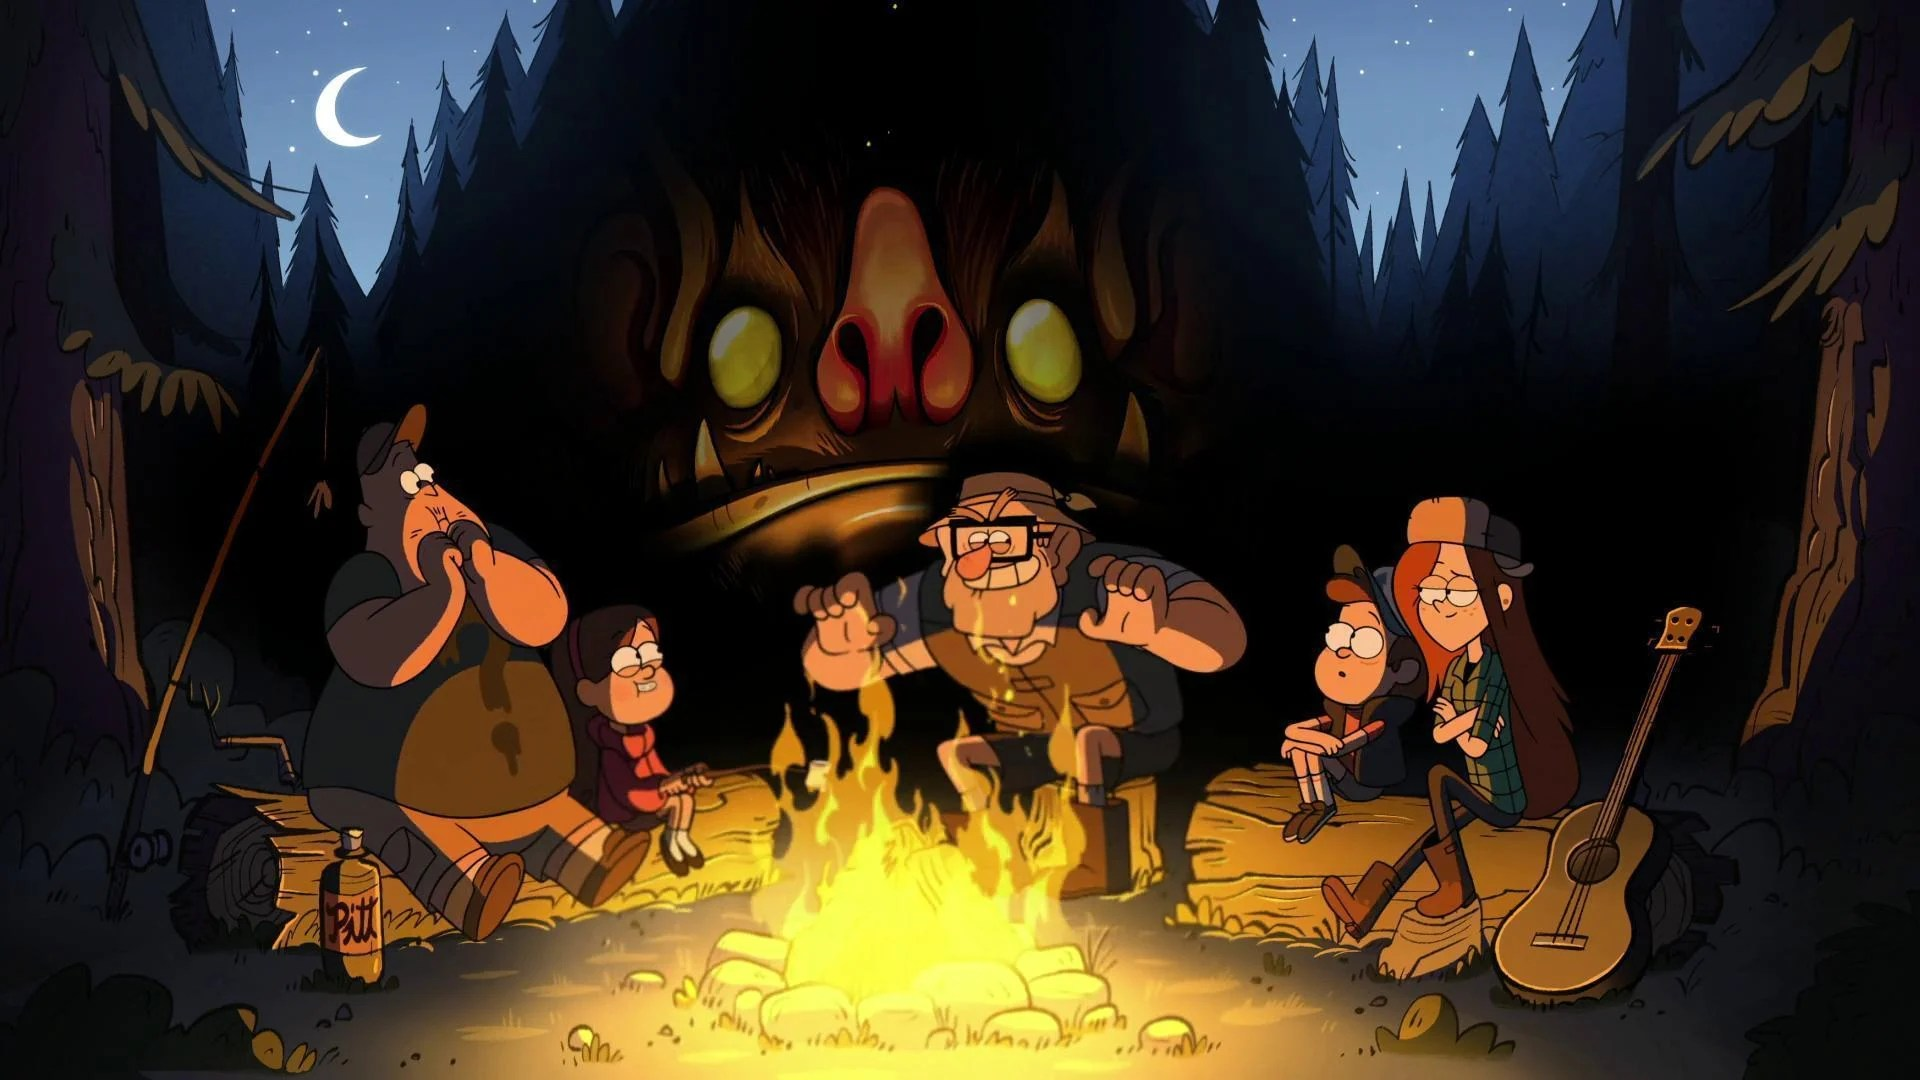 Gravity Falls Desktop Wallpaper Hd Gravity Falls Wallpapers Wallpaper Cave